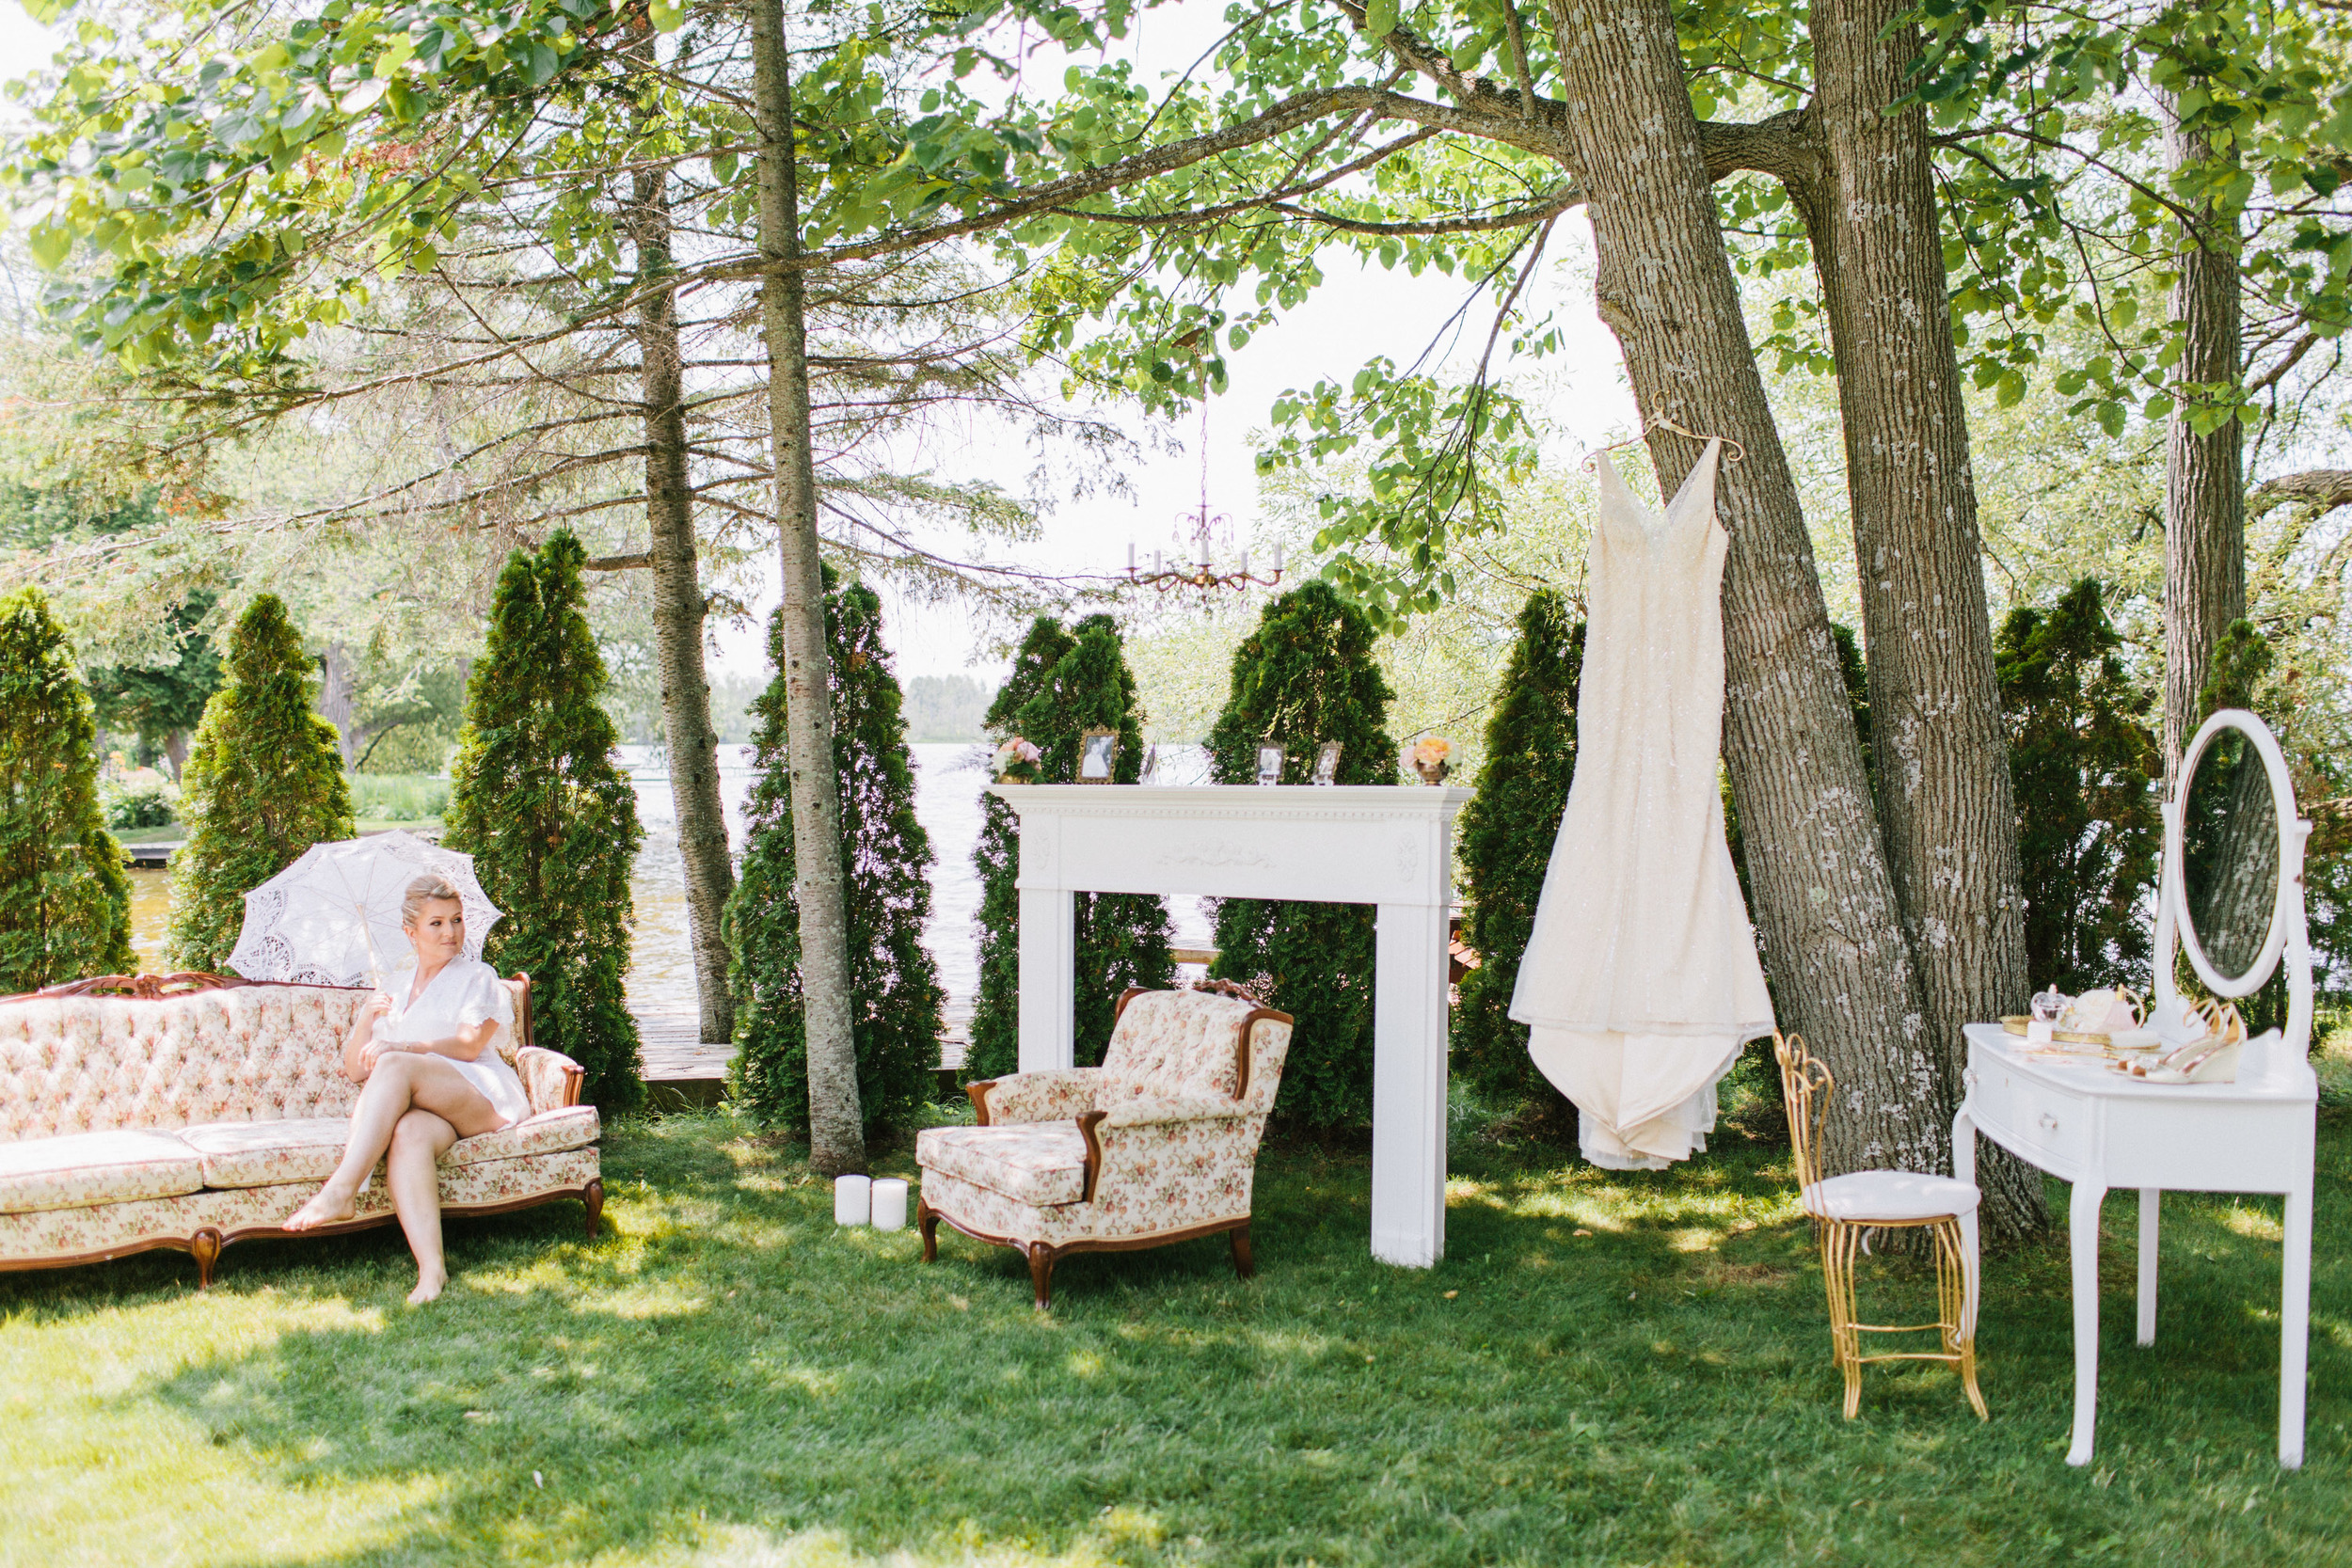 Bekki Draper - Ian - vintage - backyard-wedding-030.jpg